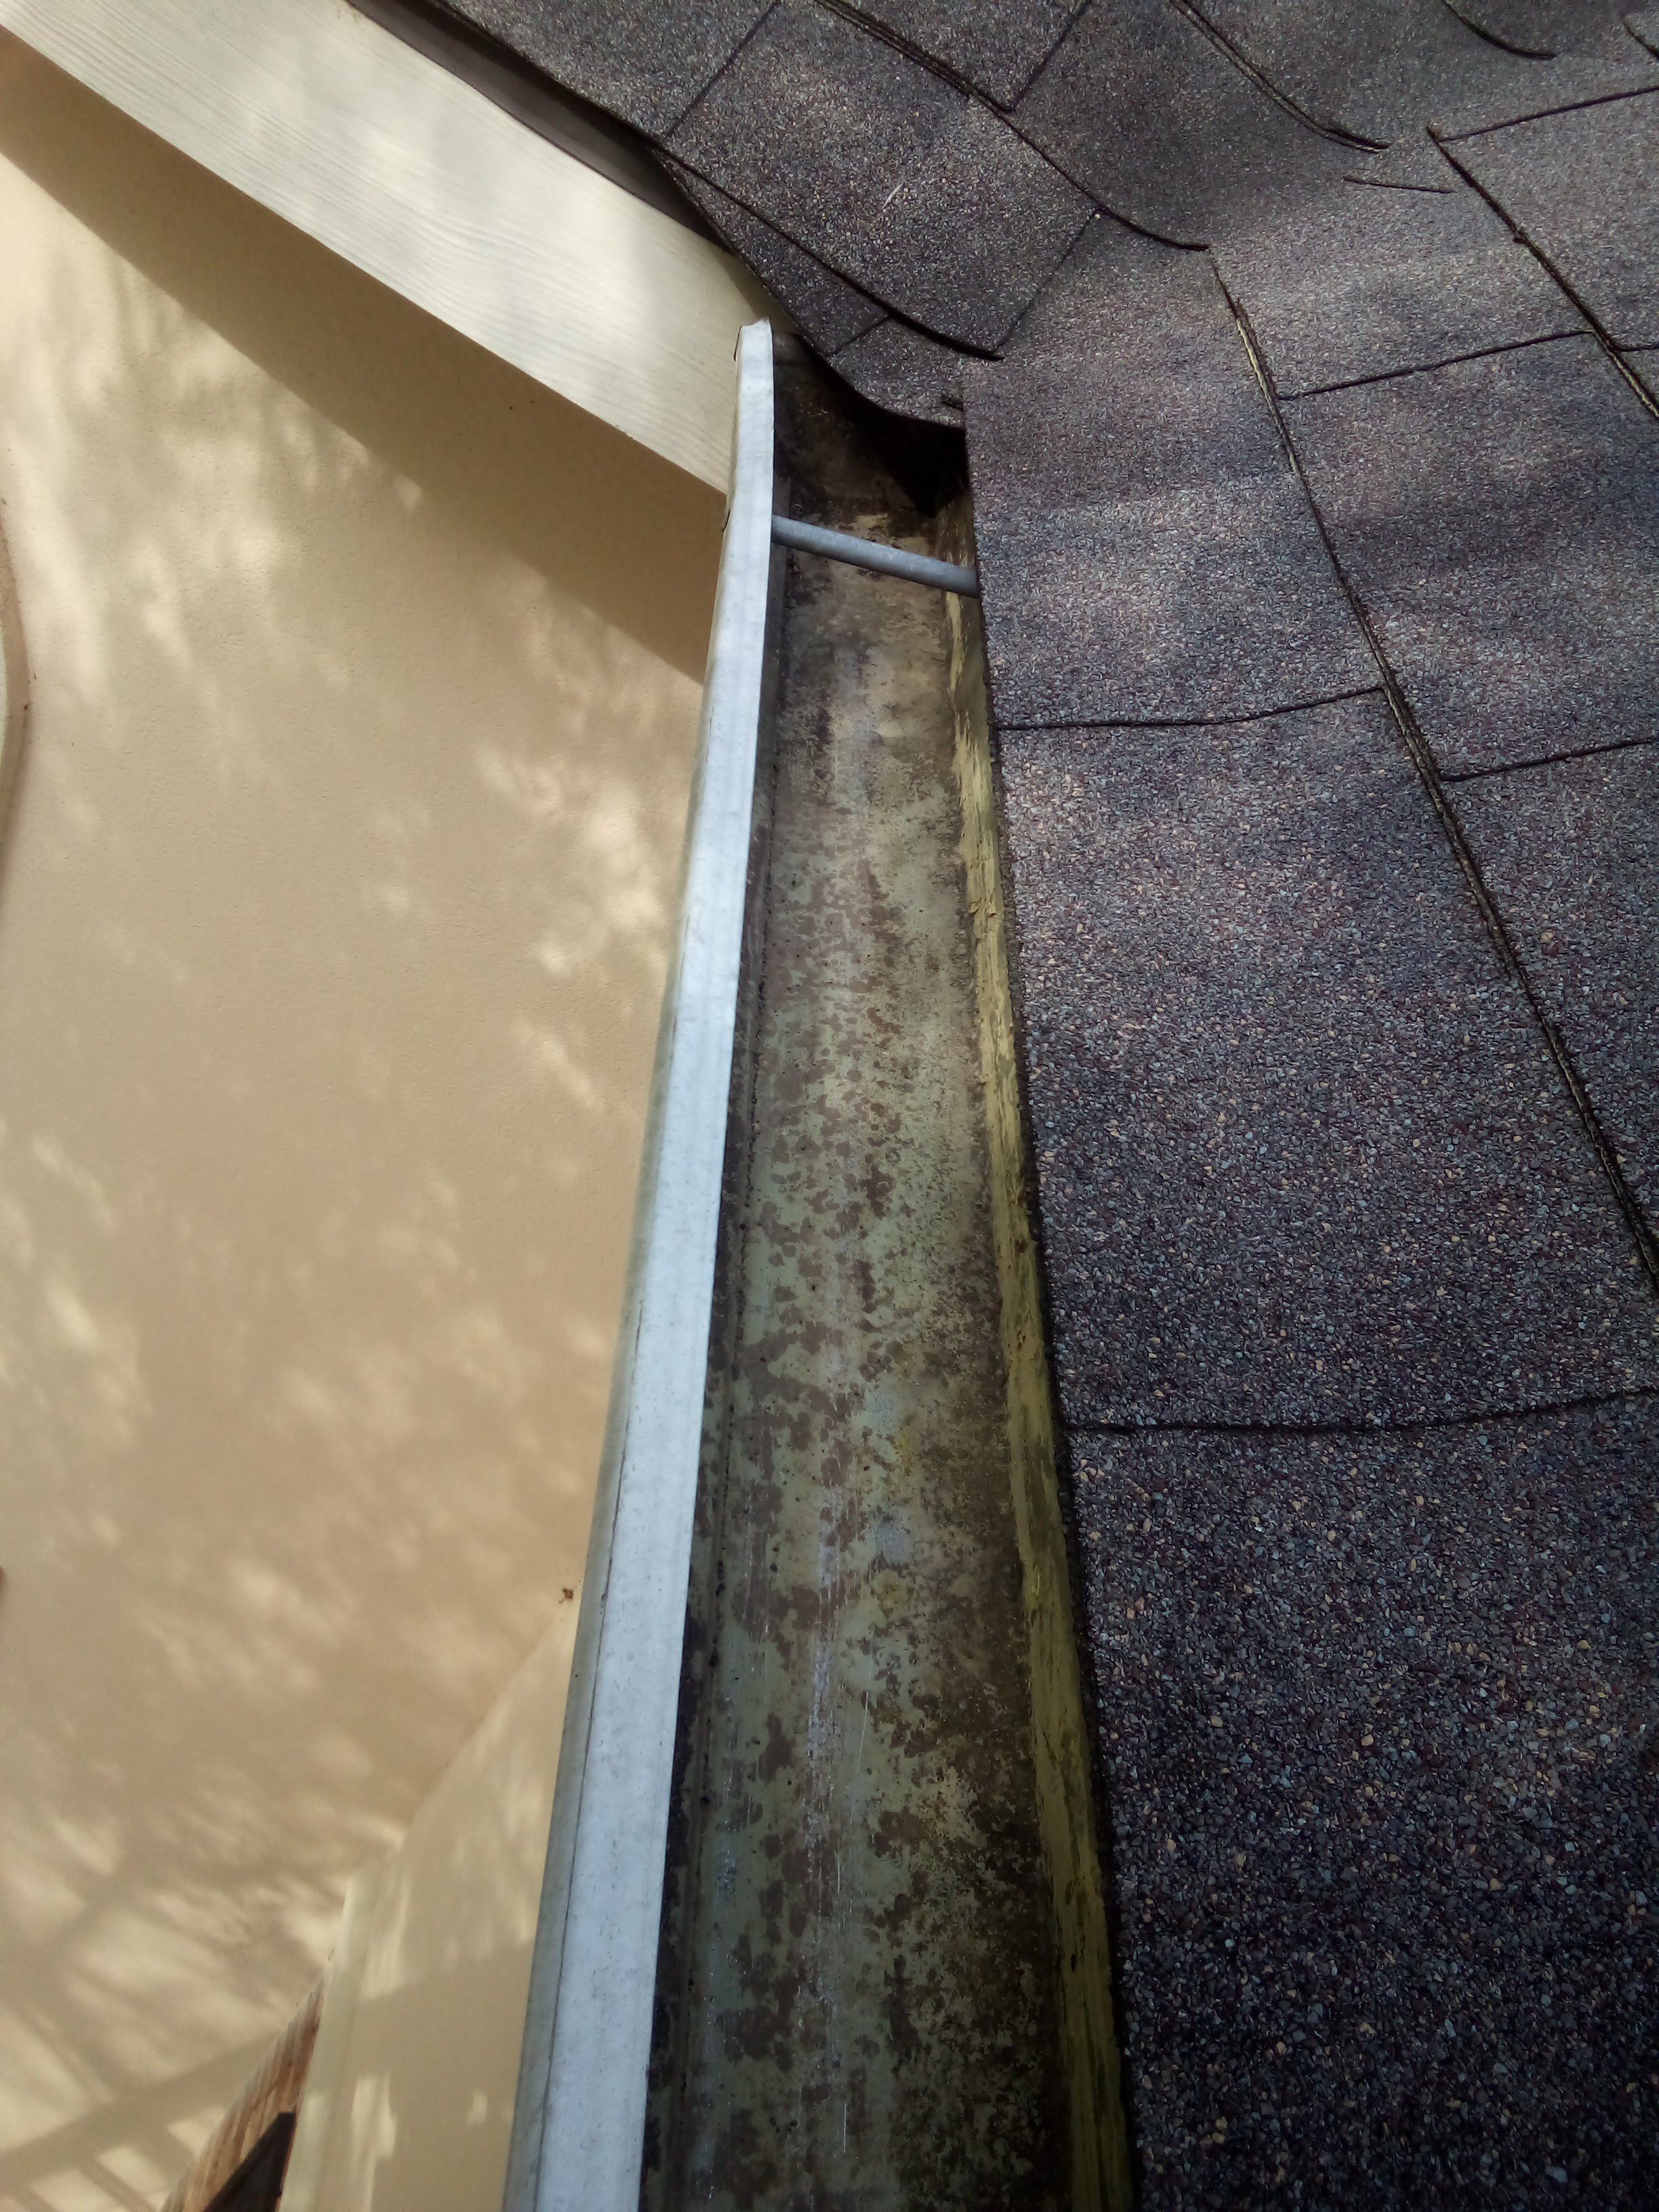 Gutter Cleaning Service Near Katy, Gutter Cleaner Near Katy,